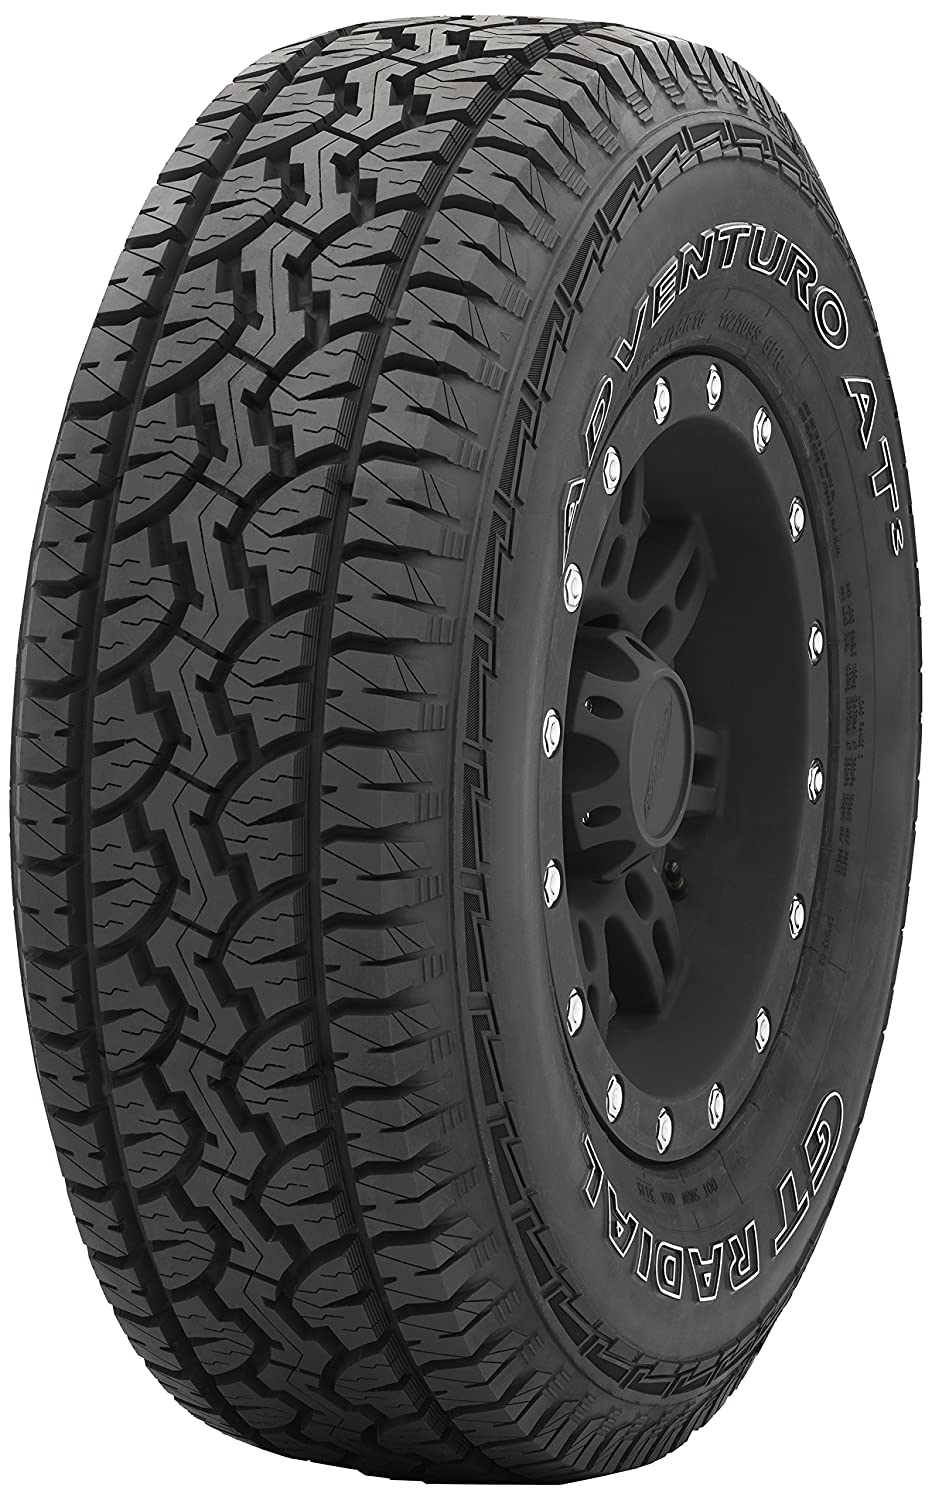 GT Radial ADVENTURO AT3 OWL All-Terrain Radial Tire - P265/70R18 114S 100A2309